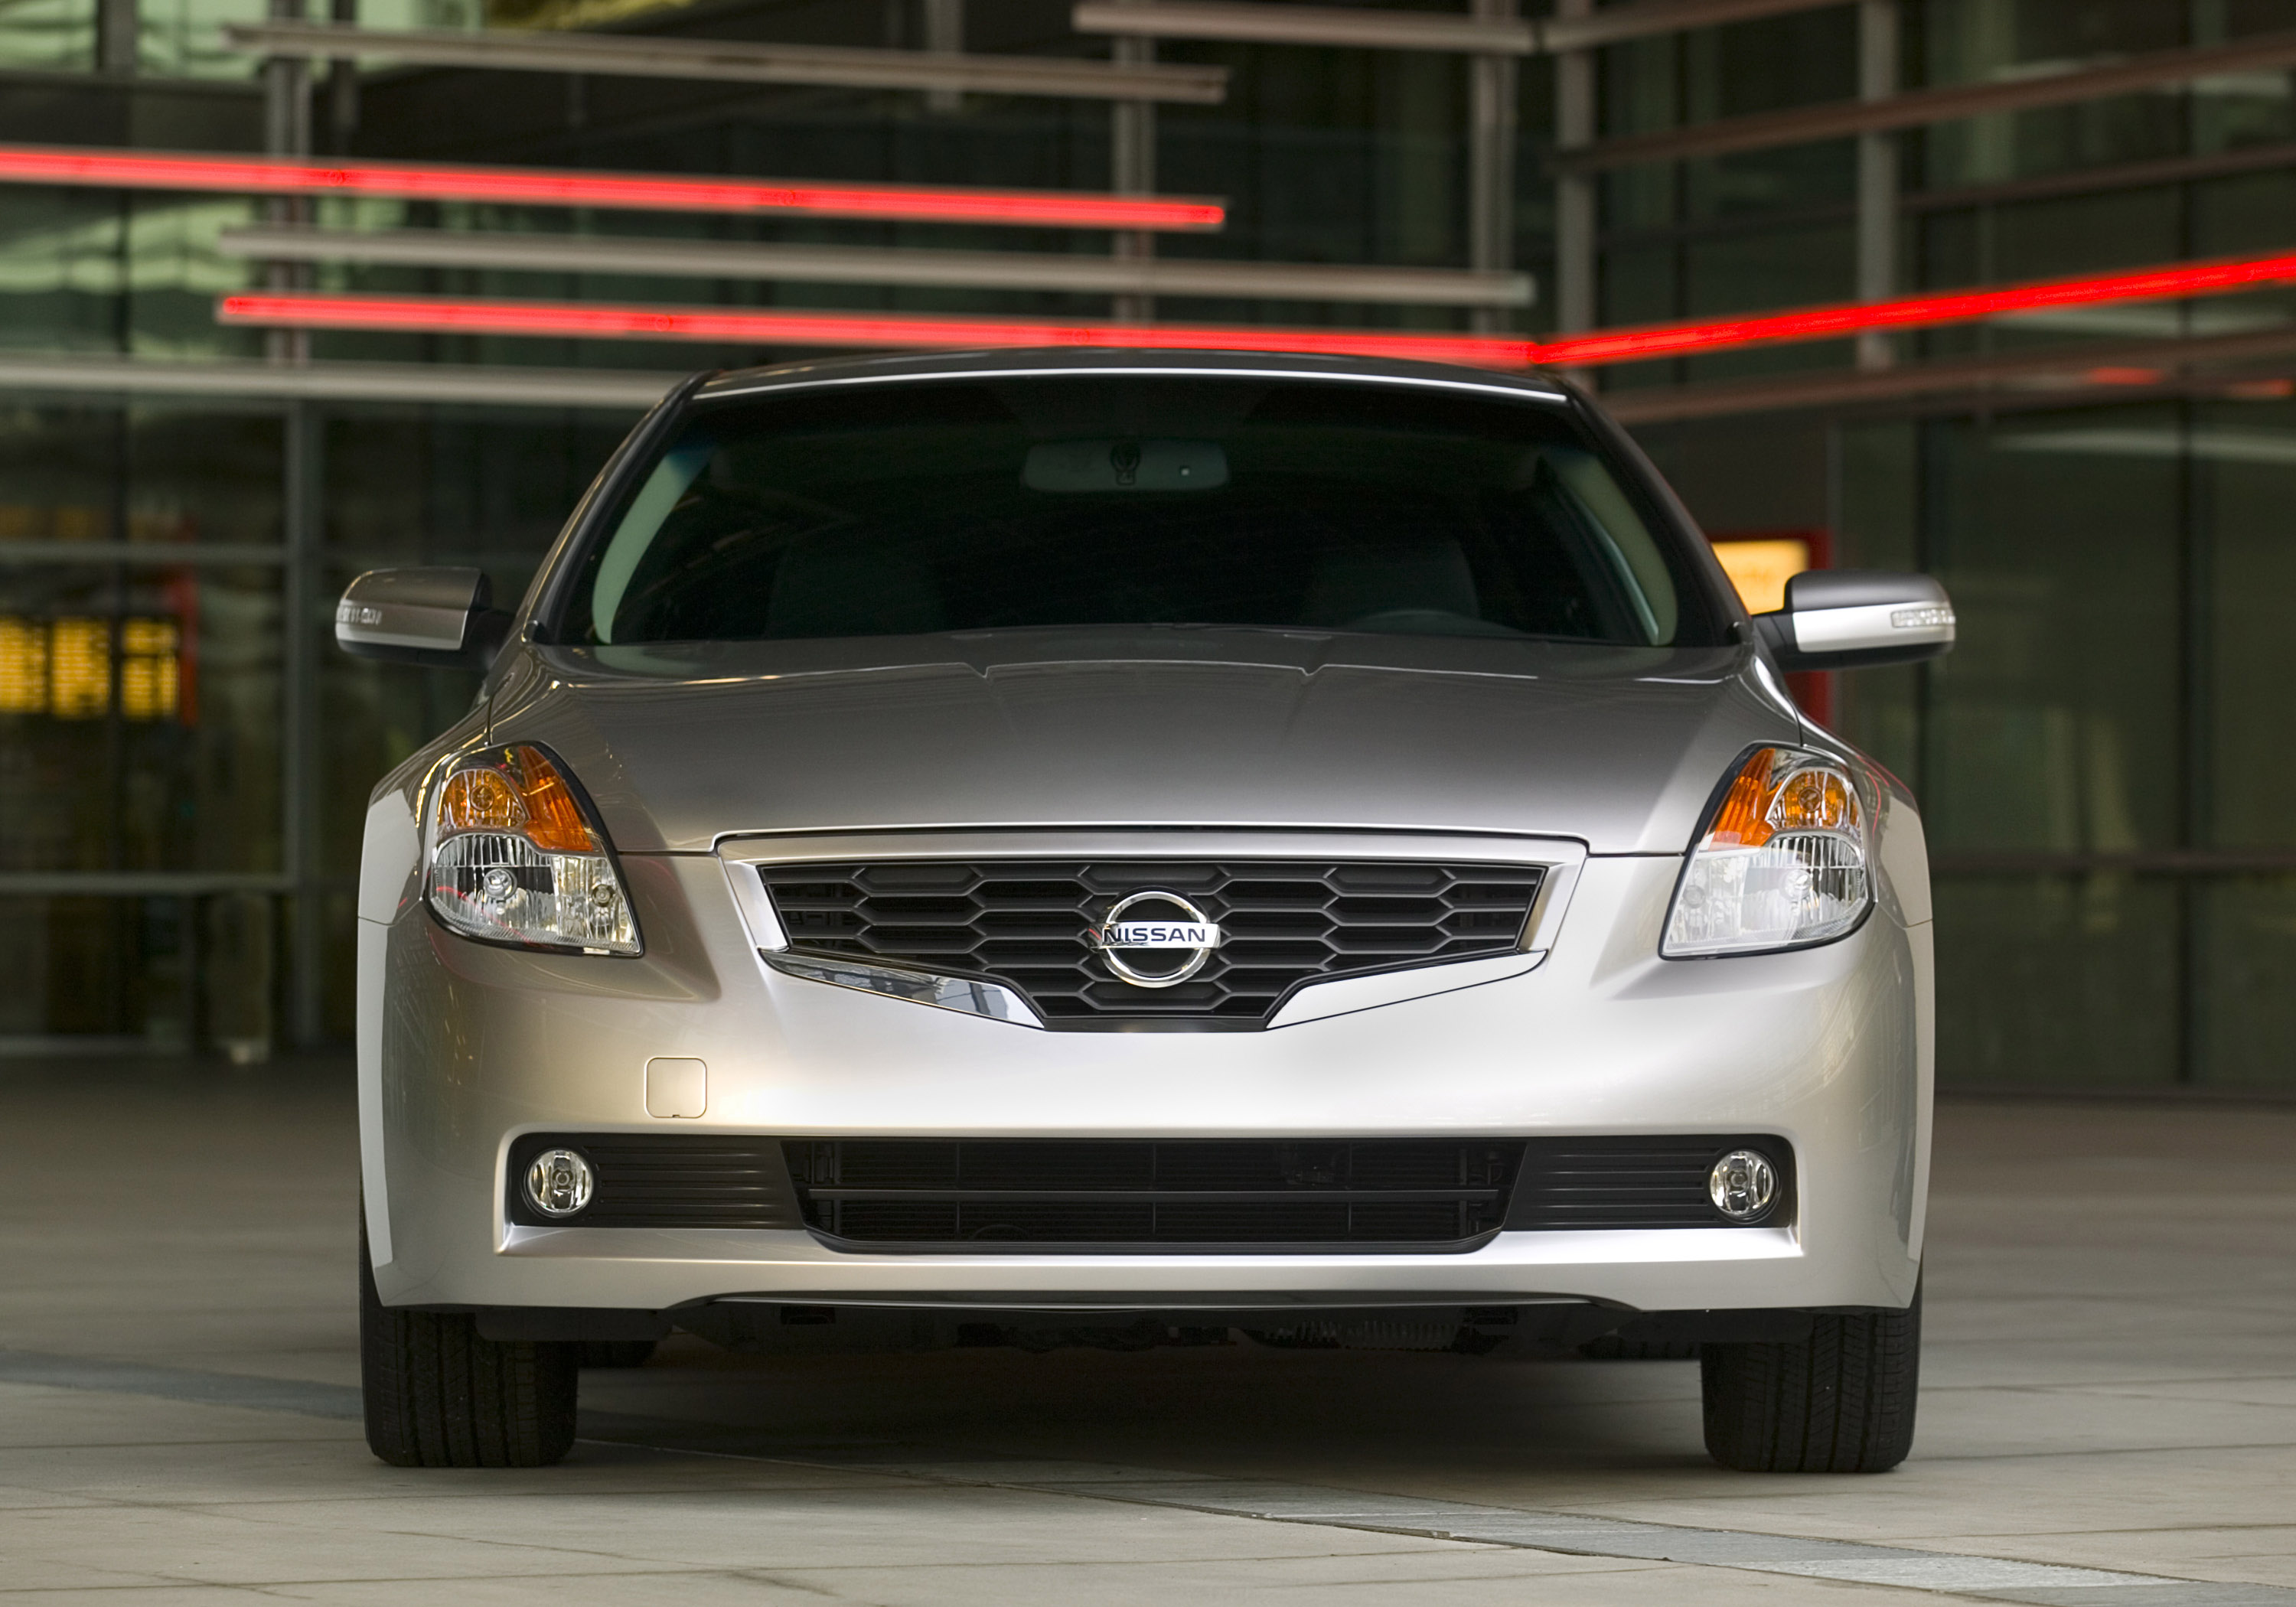 2009 Nissan Altima Coupe Demands Attention With Aggressive